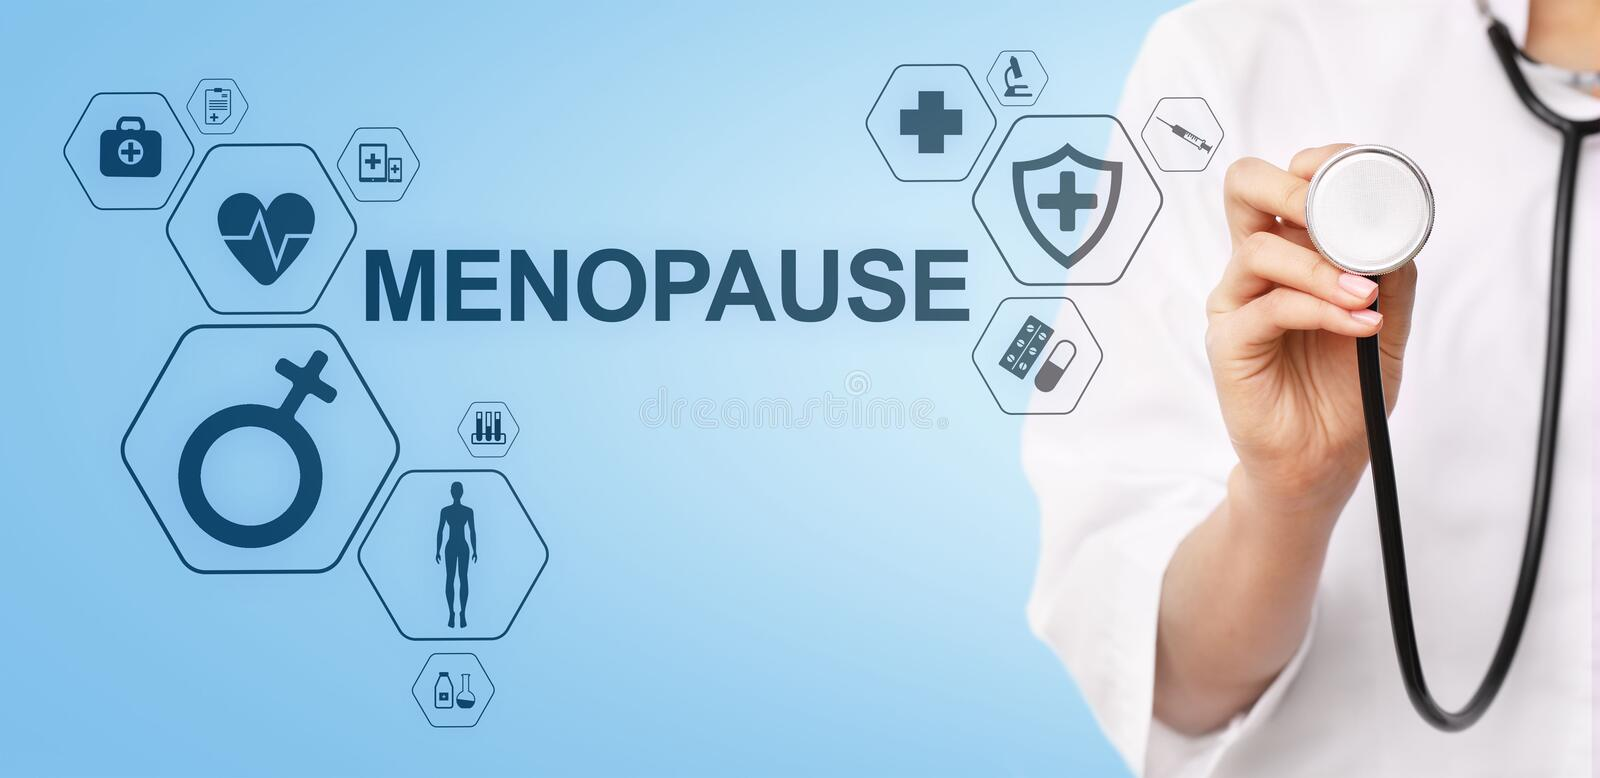 Menopause age women health medical concept on screen. Menopause age women health medical concept on screen vector illustration